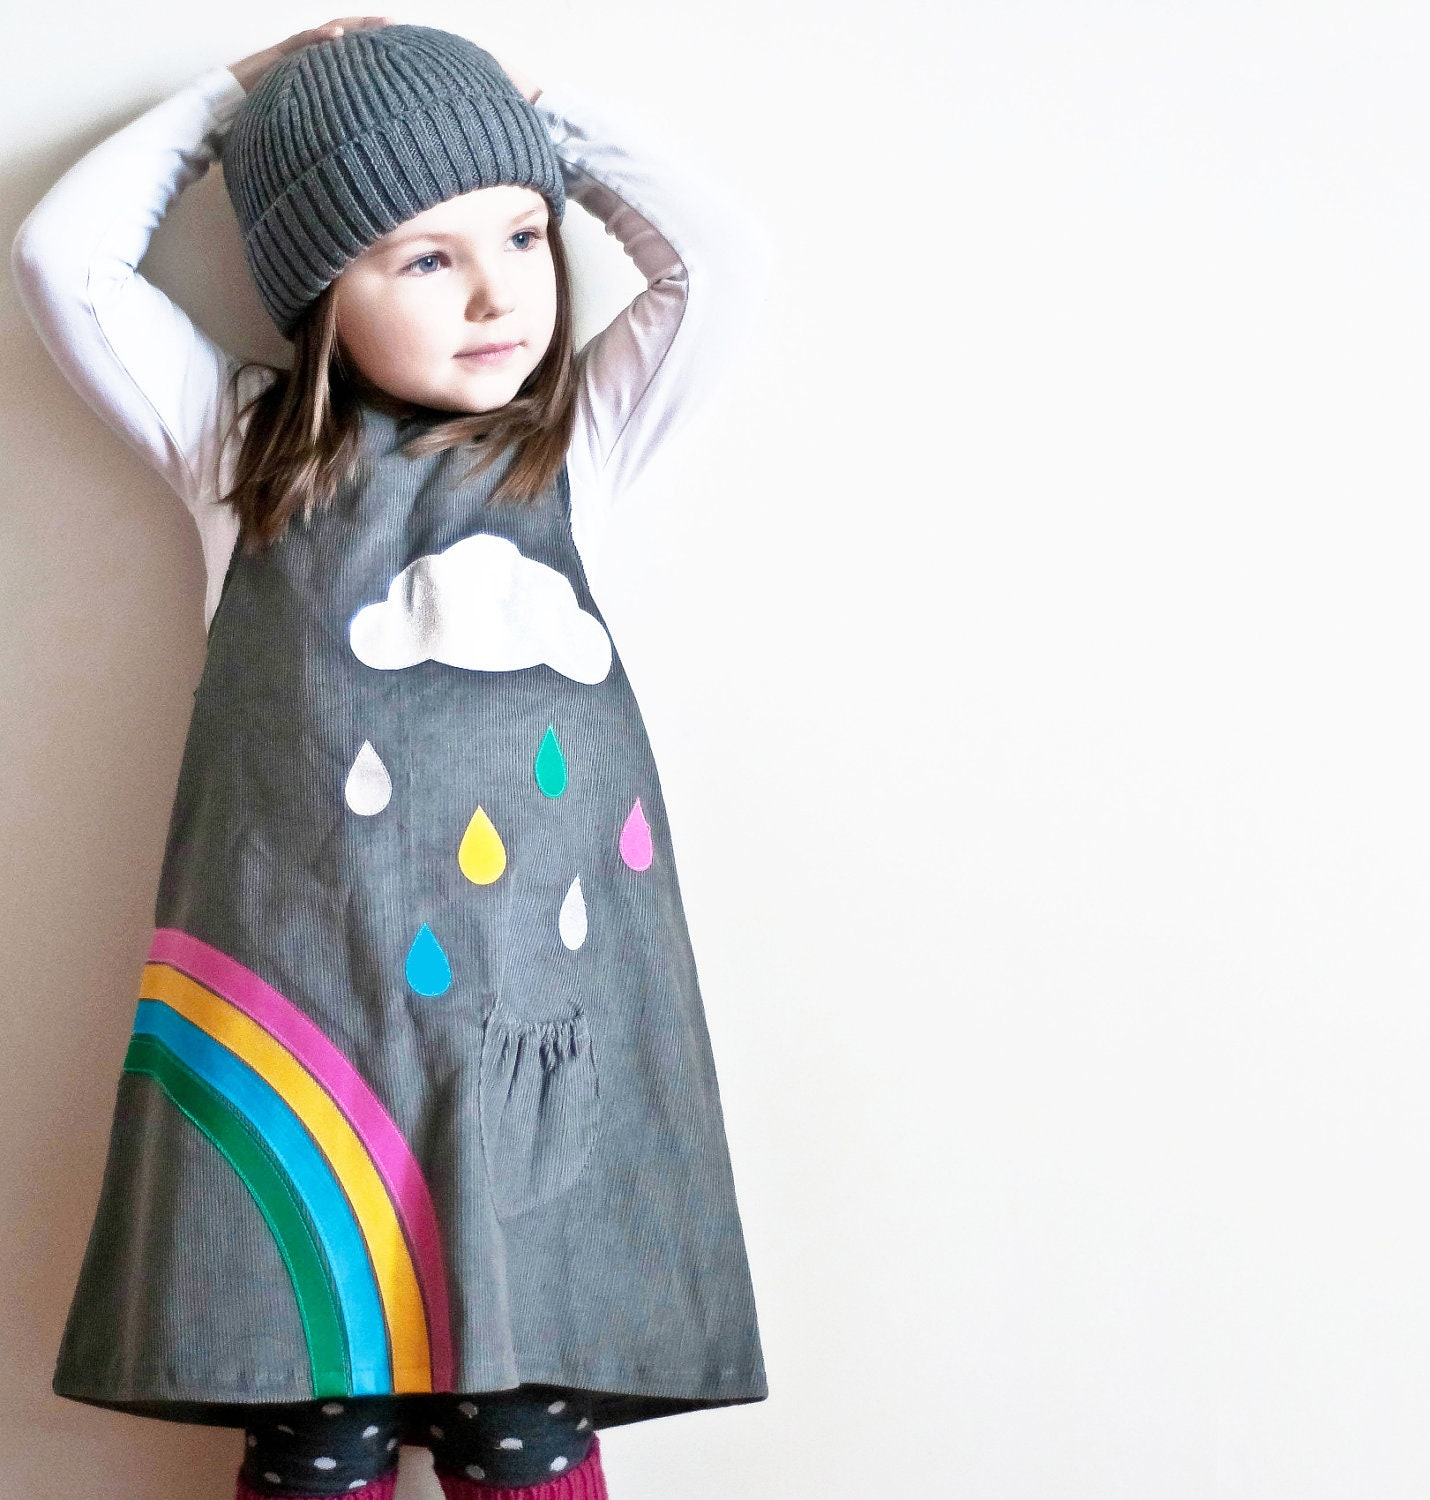 RAINBOW & silver cloud- Little girls dress-grey corduroy age 6M to 6T-Wild Things Dresses